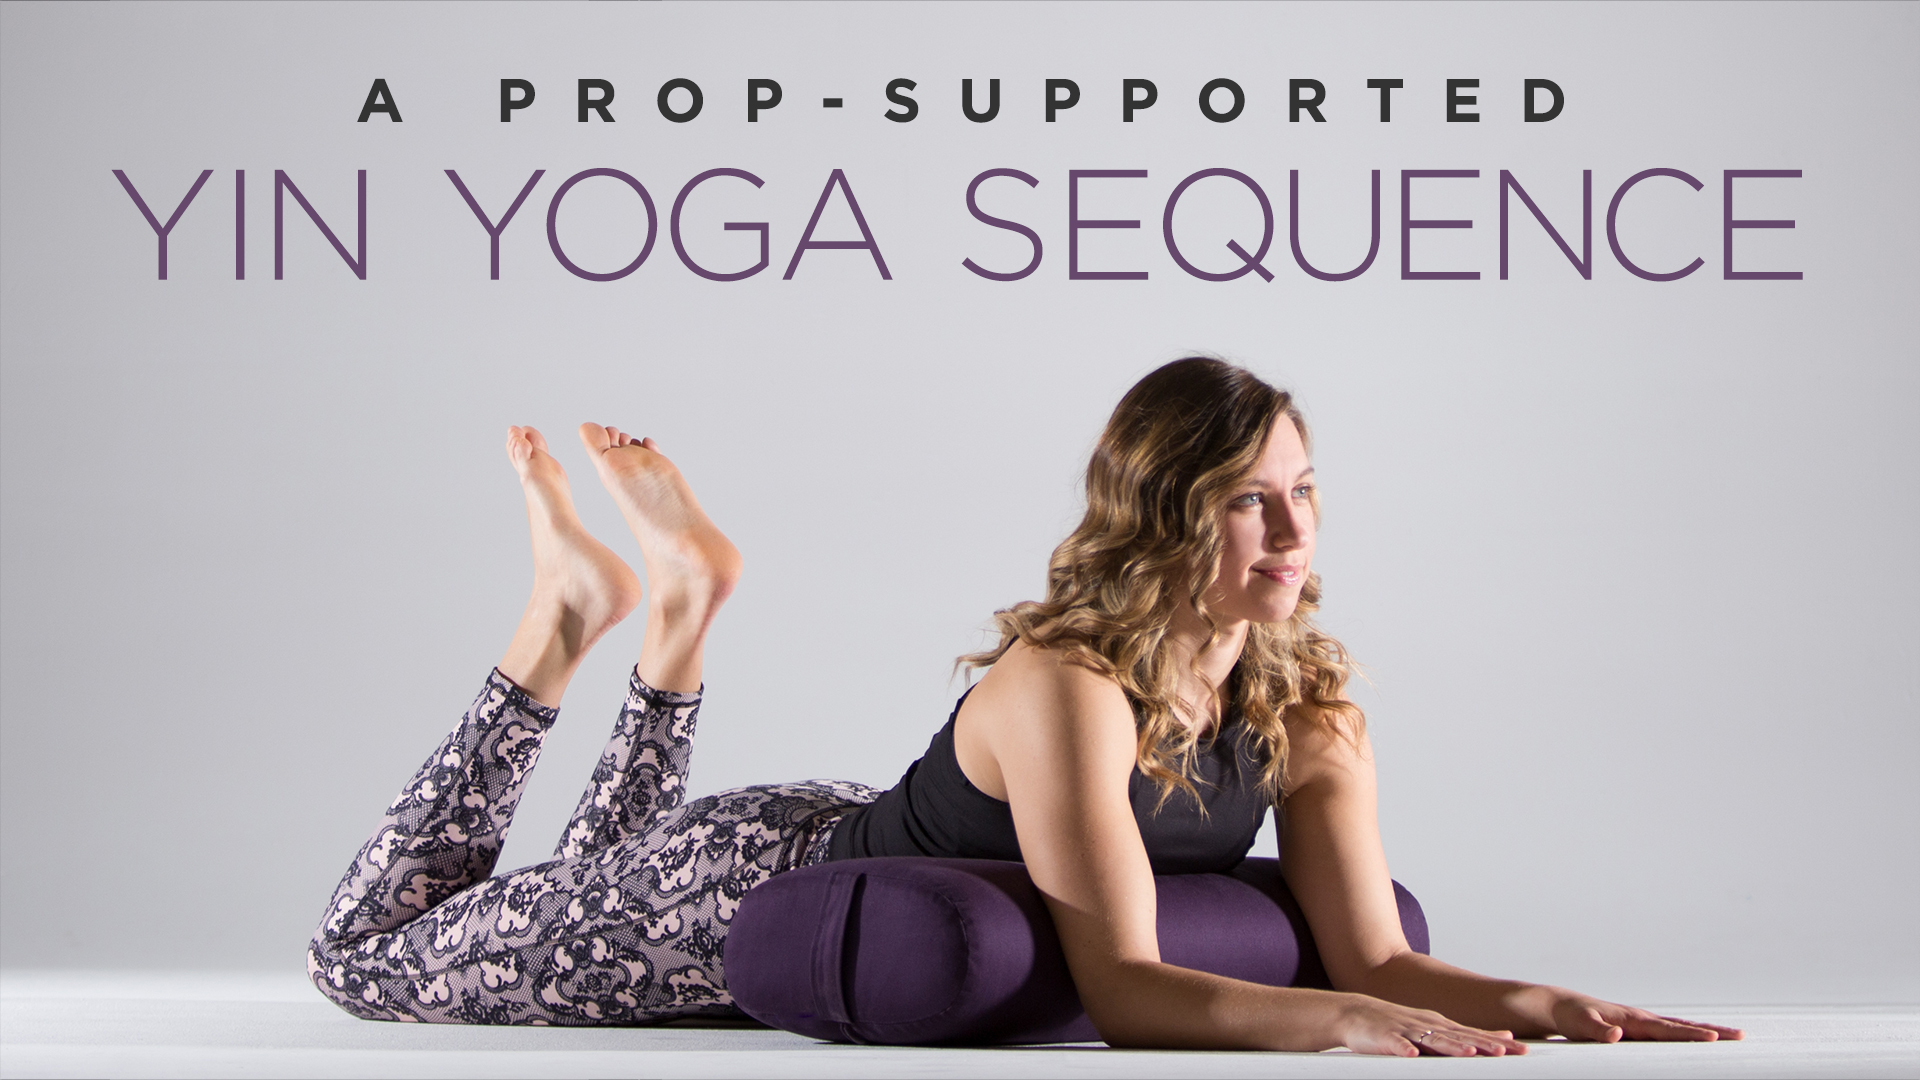 A Prop-Supported Yin Yoga Sequence | Yoga International